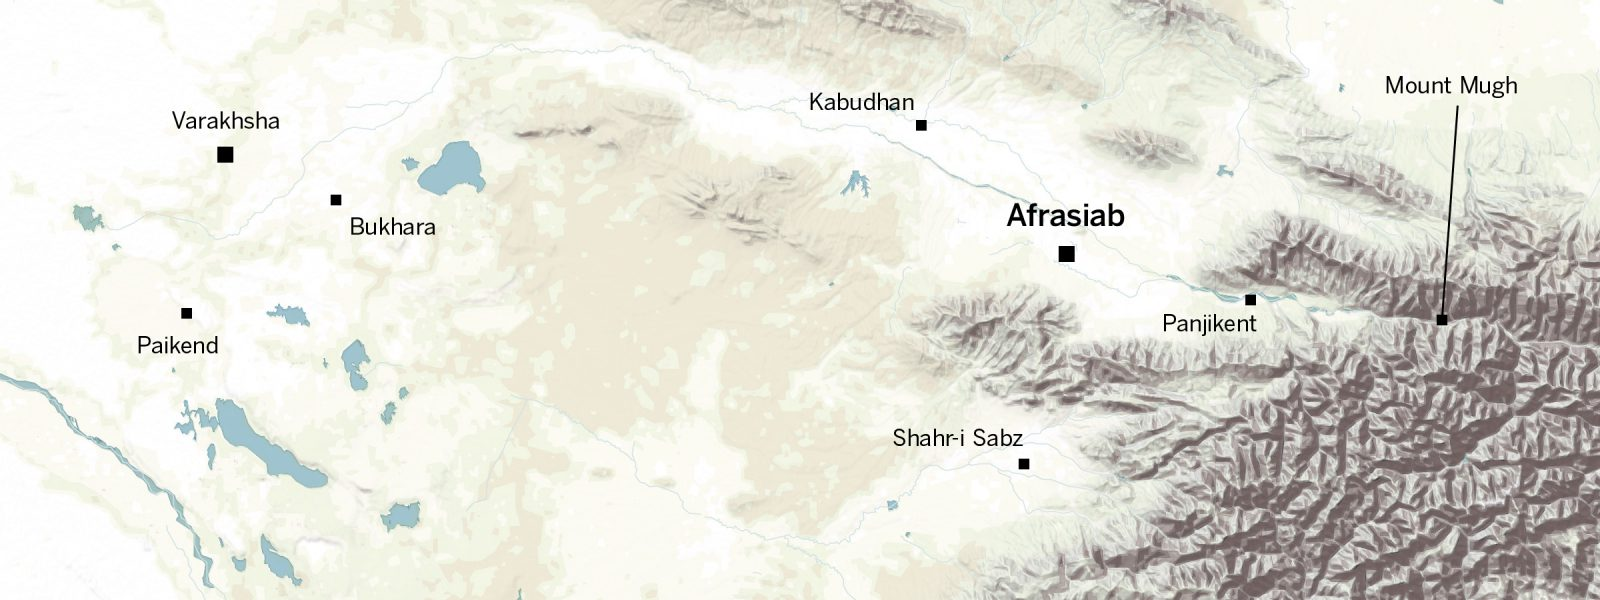 Map showing the location of Afrasiab